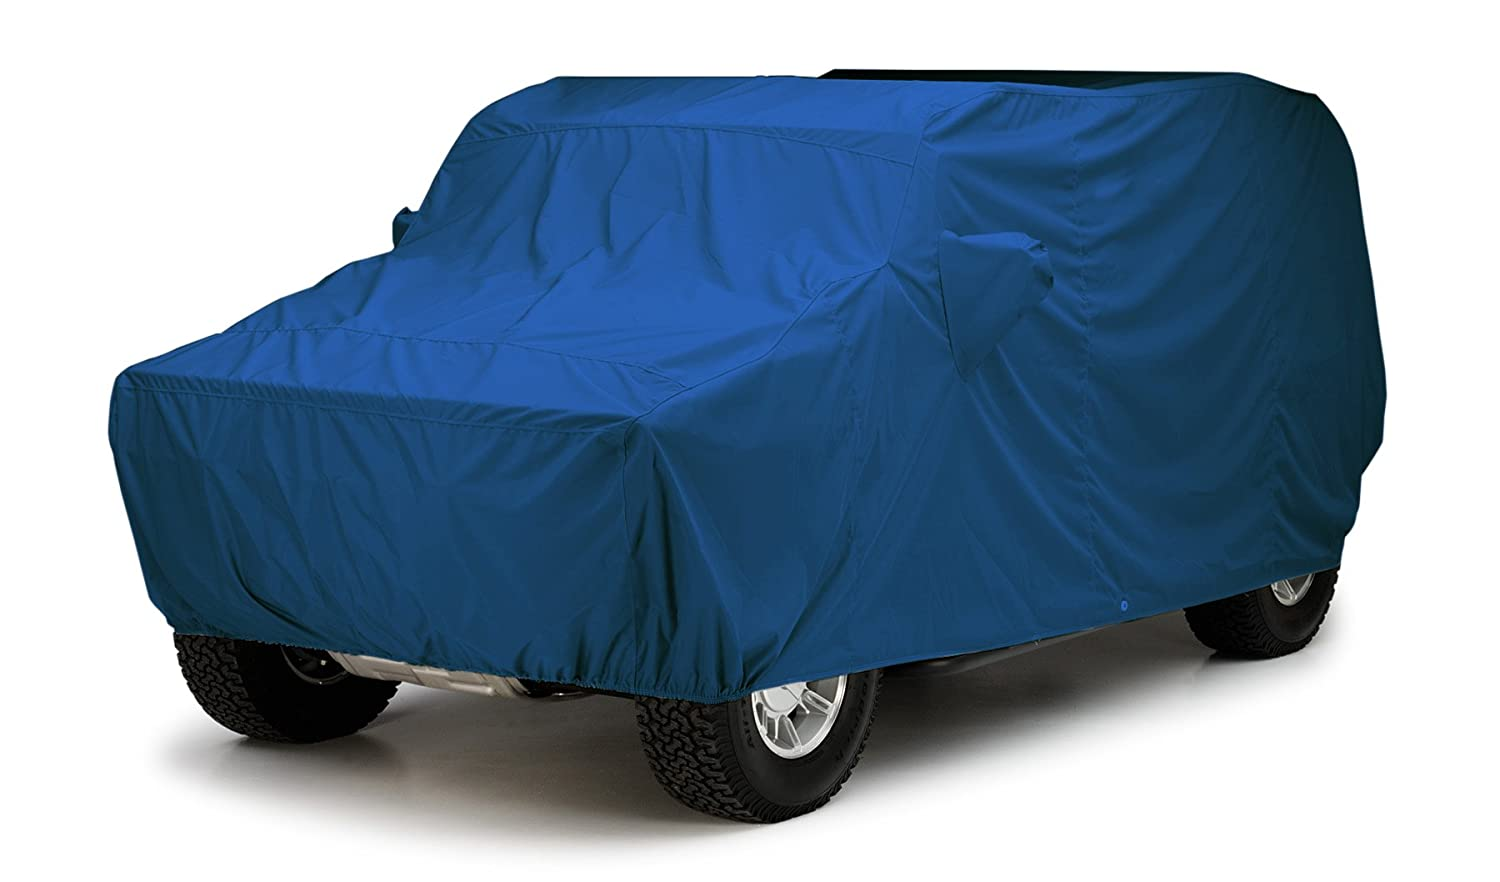 WeatherShield HP Fabric, Light Blue Covercraft Custom Fit Car Cover for Land Rover Defender 90